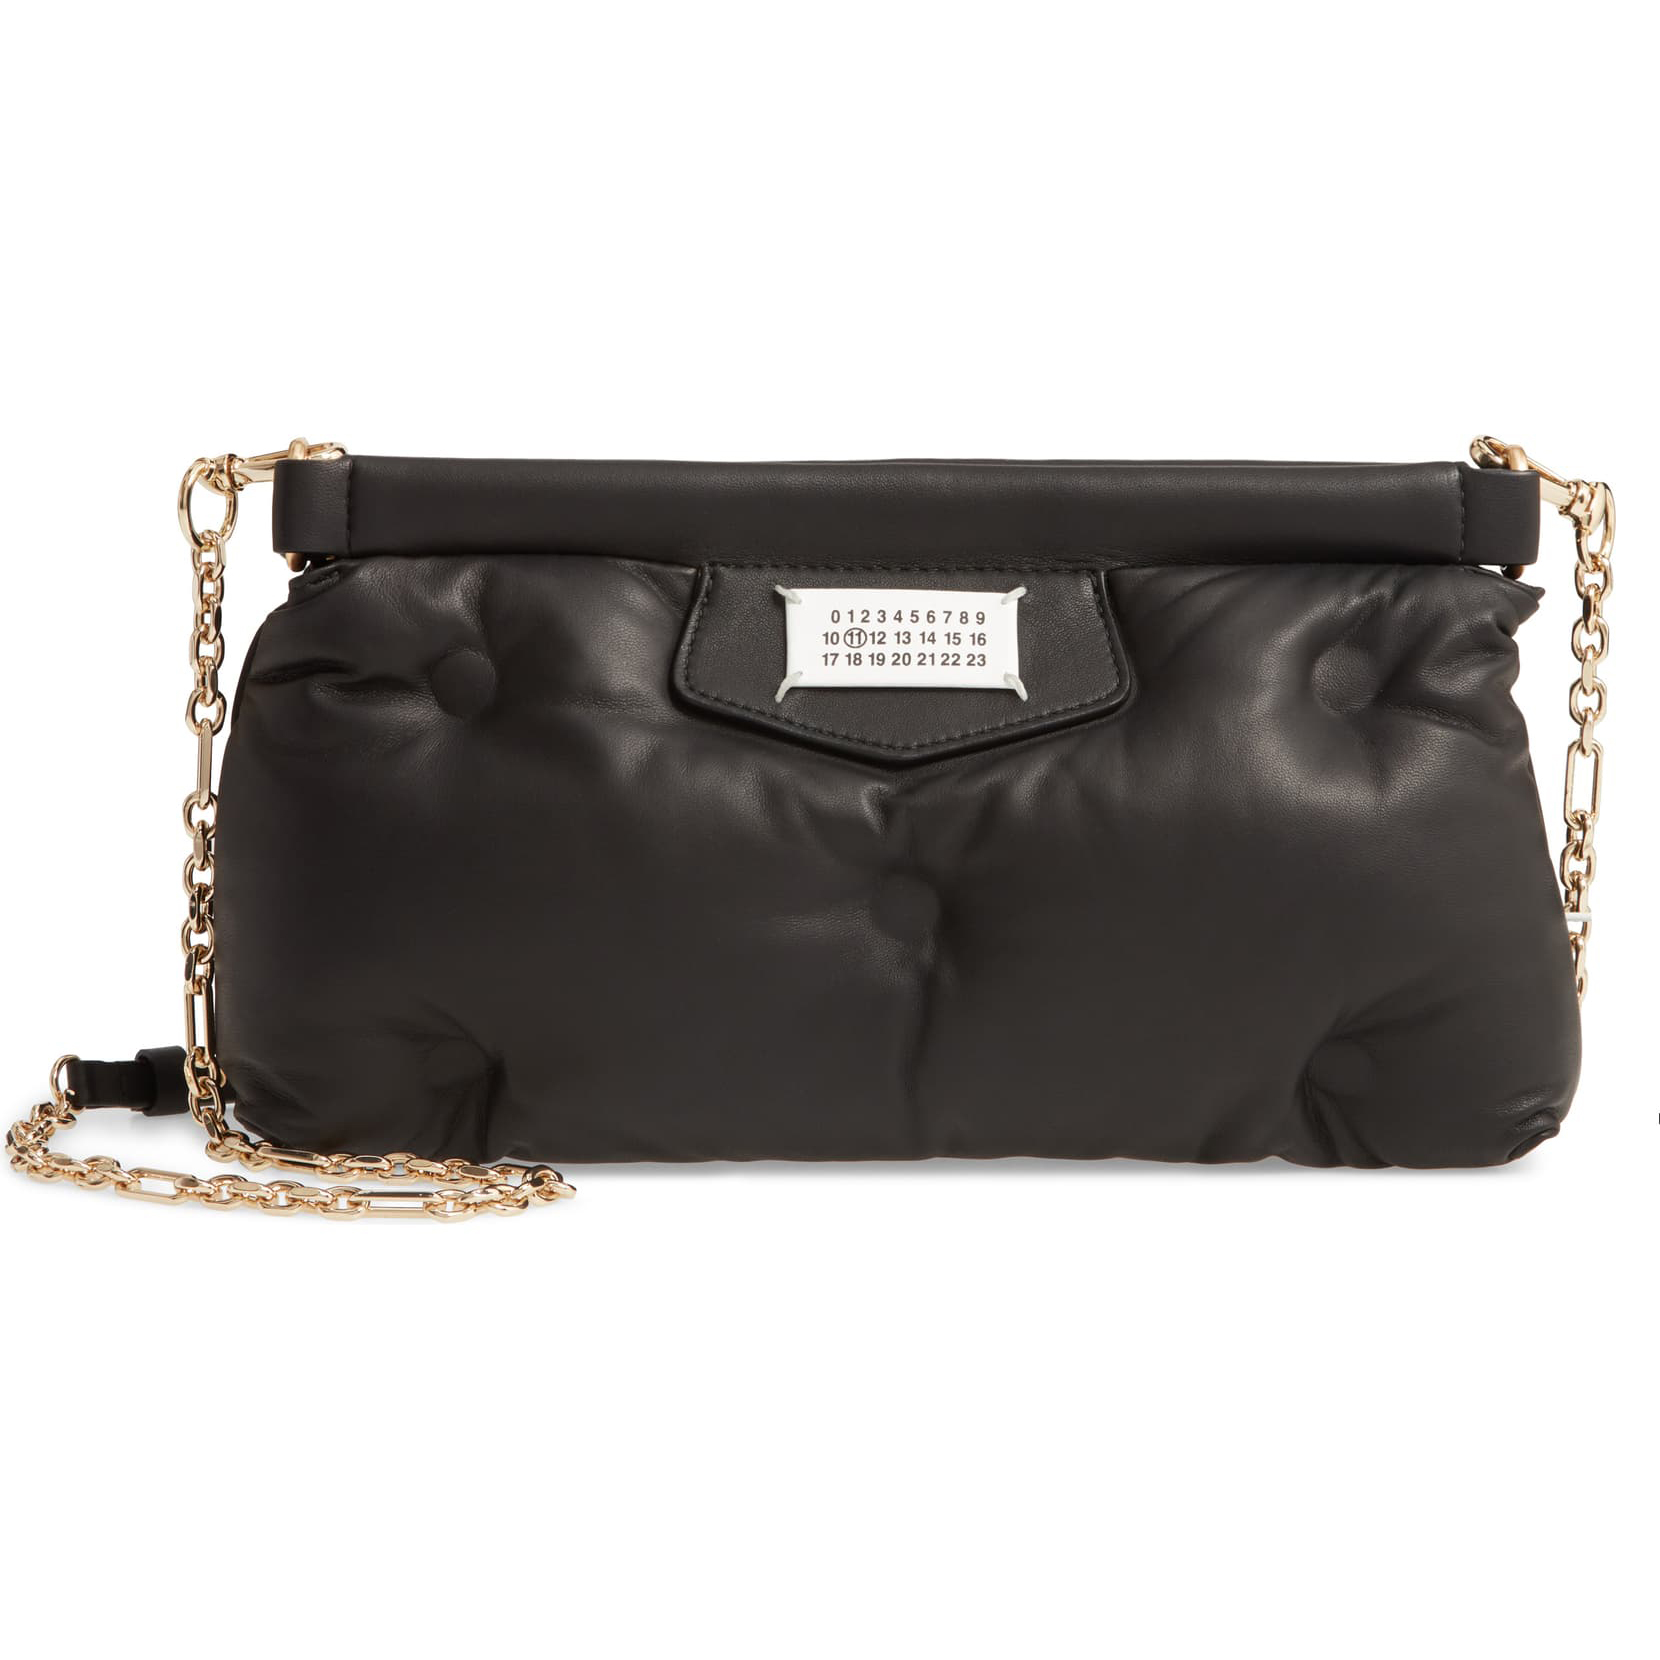 Maison Margiela Glam Slam Plush Leather Clutch